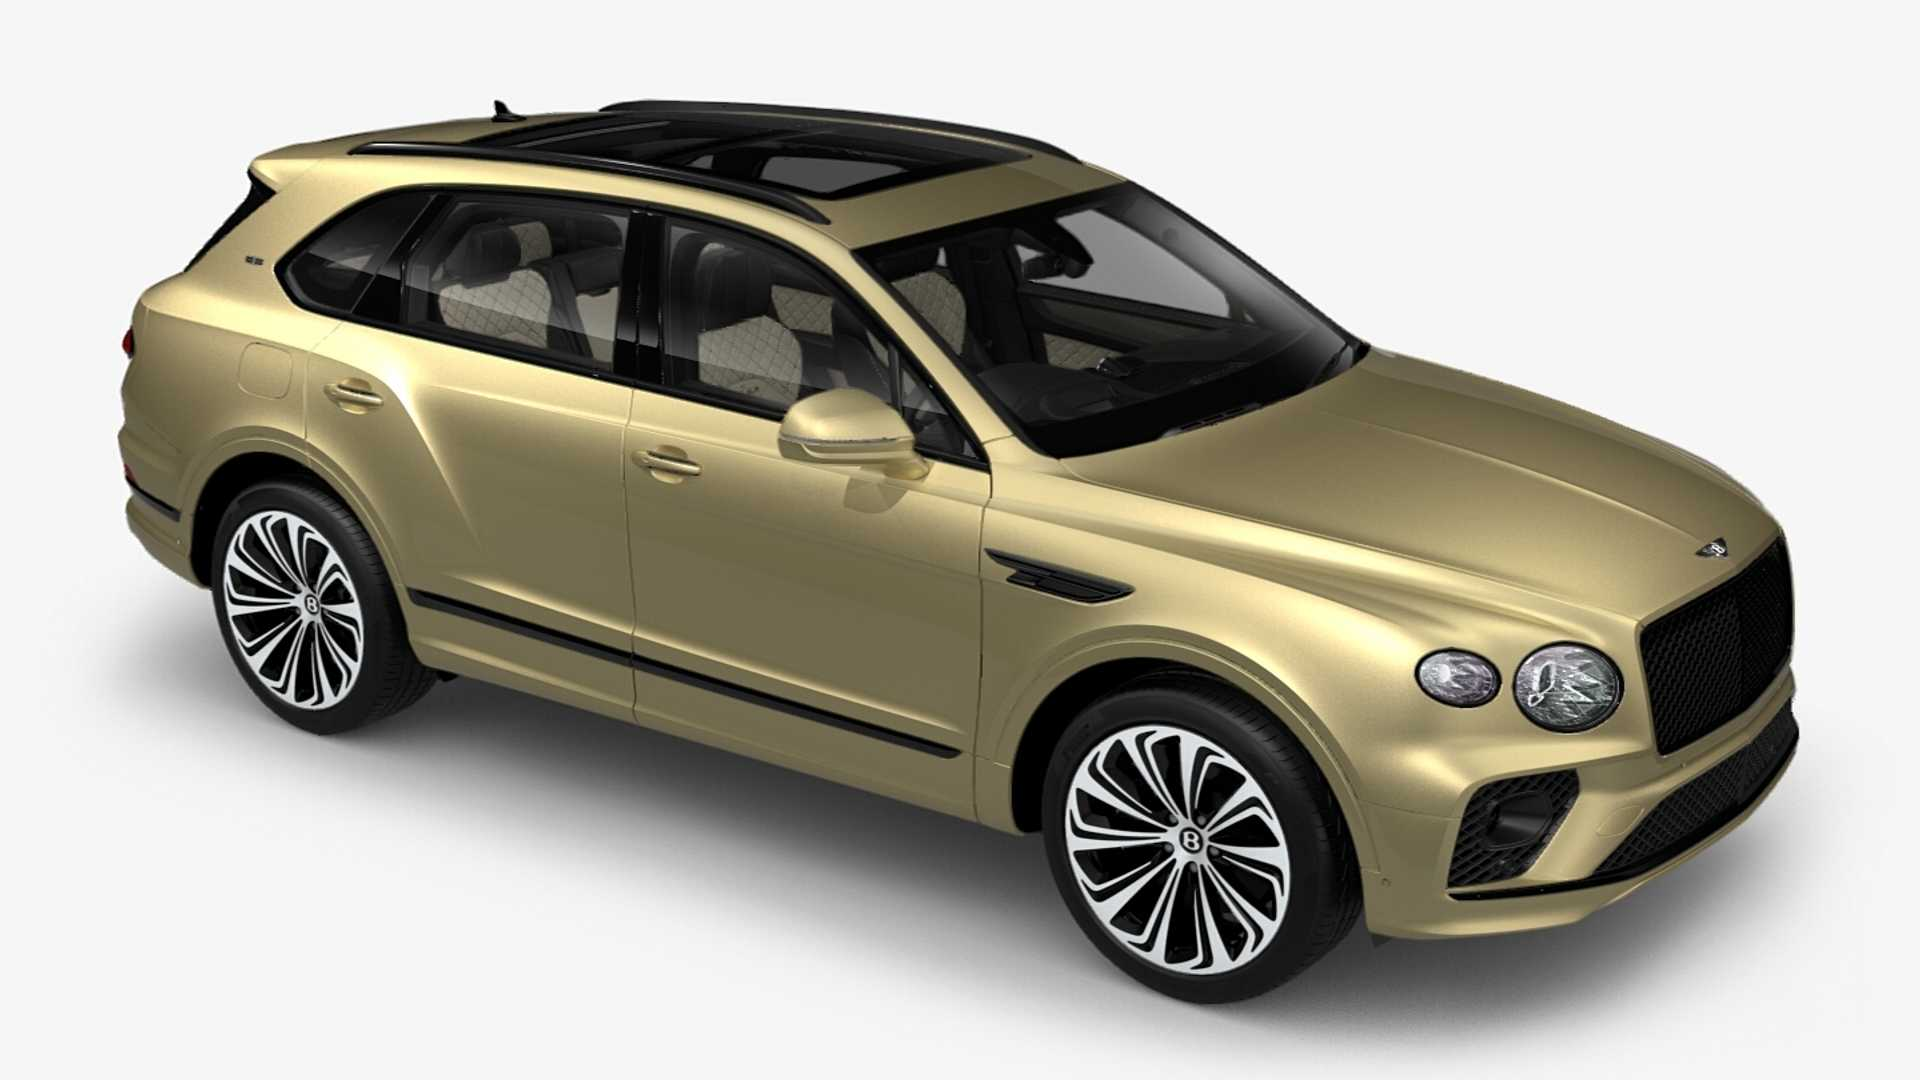 2021 Bentley Bentayga Configurator Is Up Spend Your Virtual Money Wisely